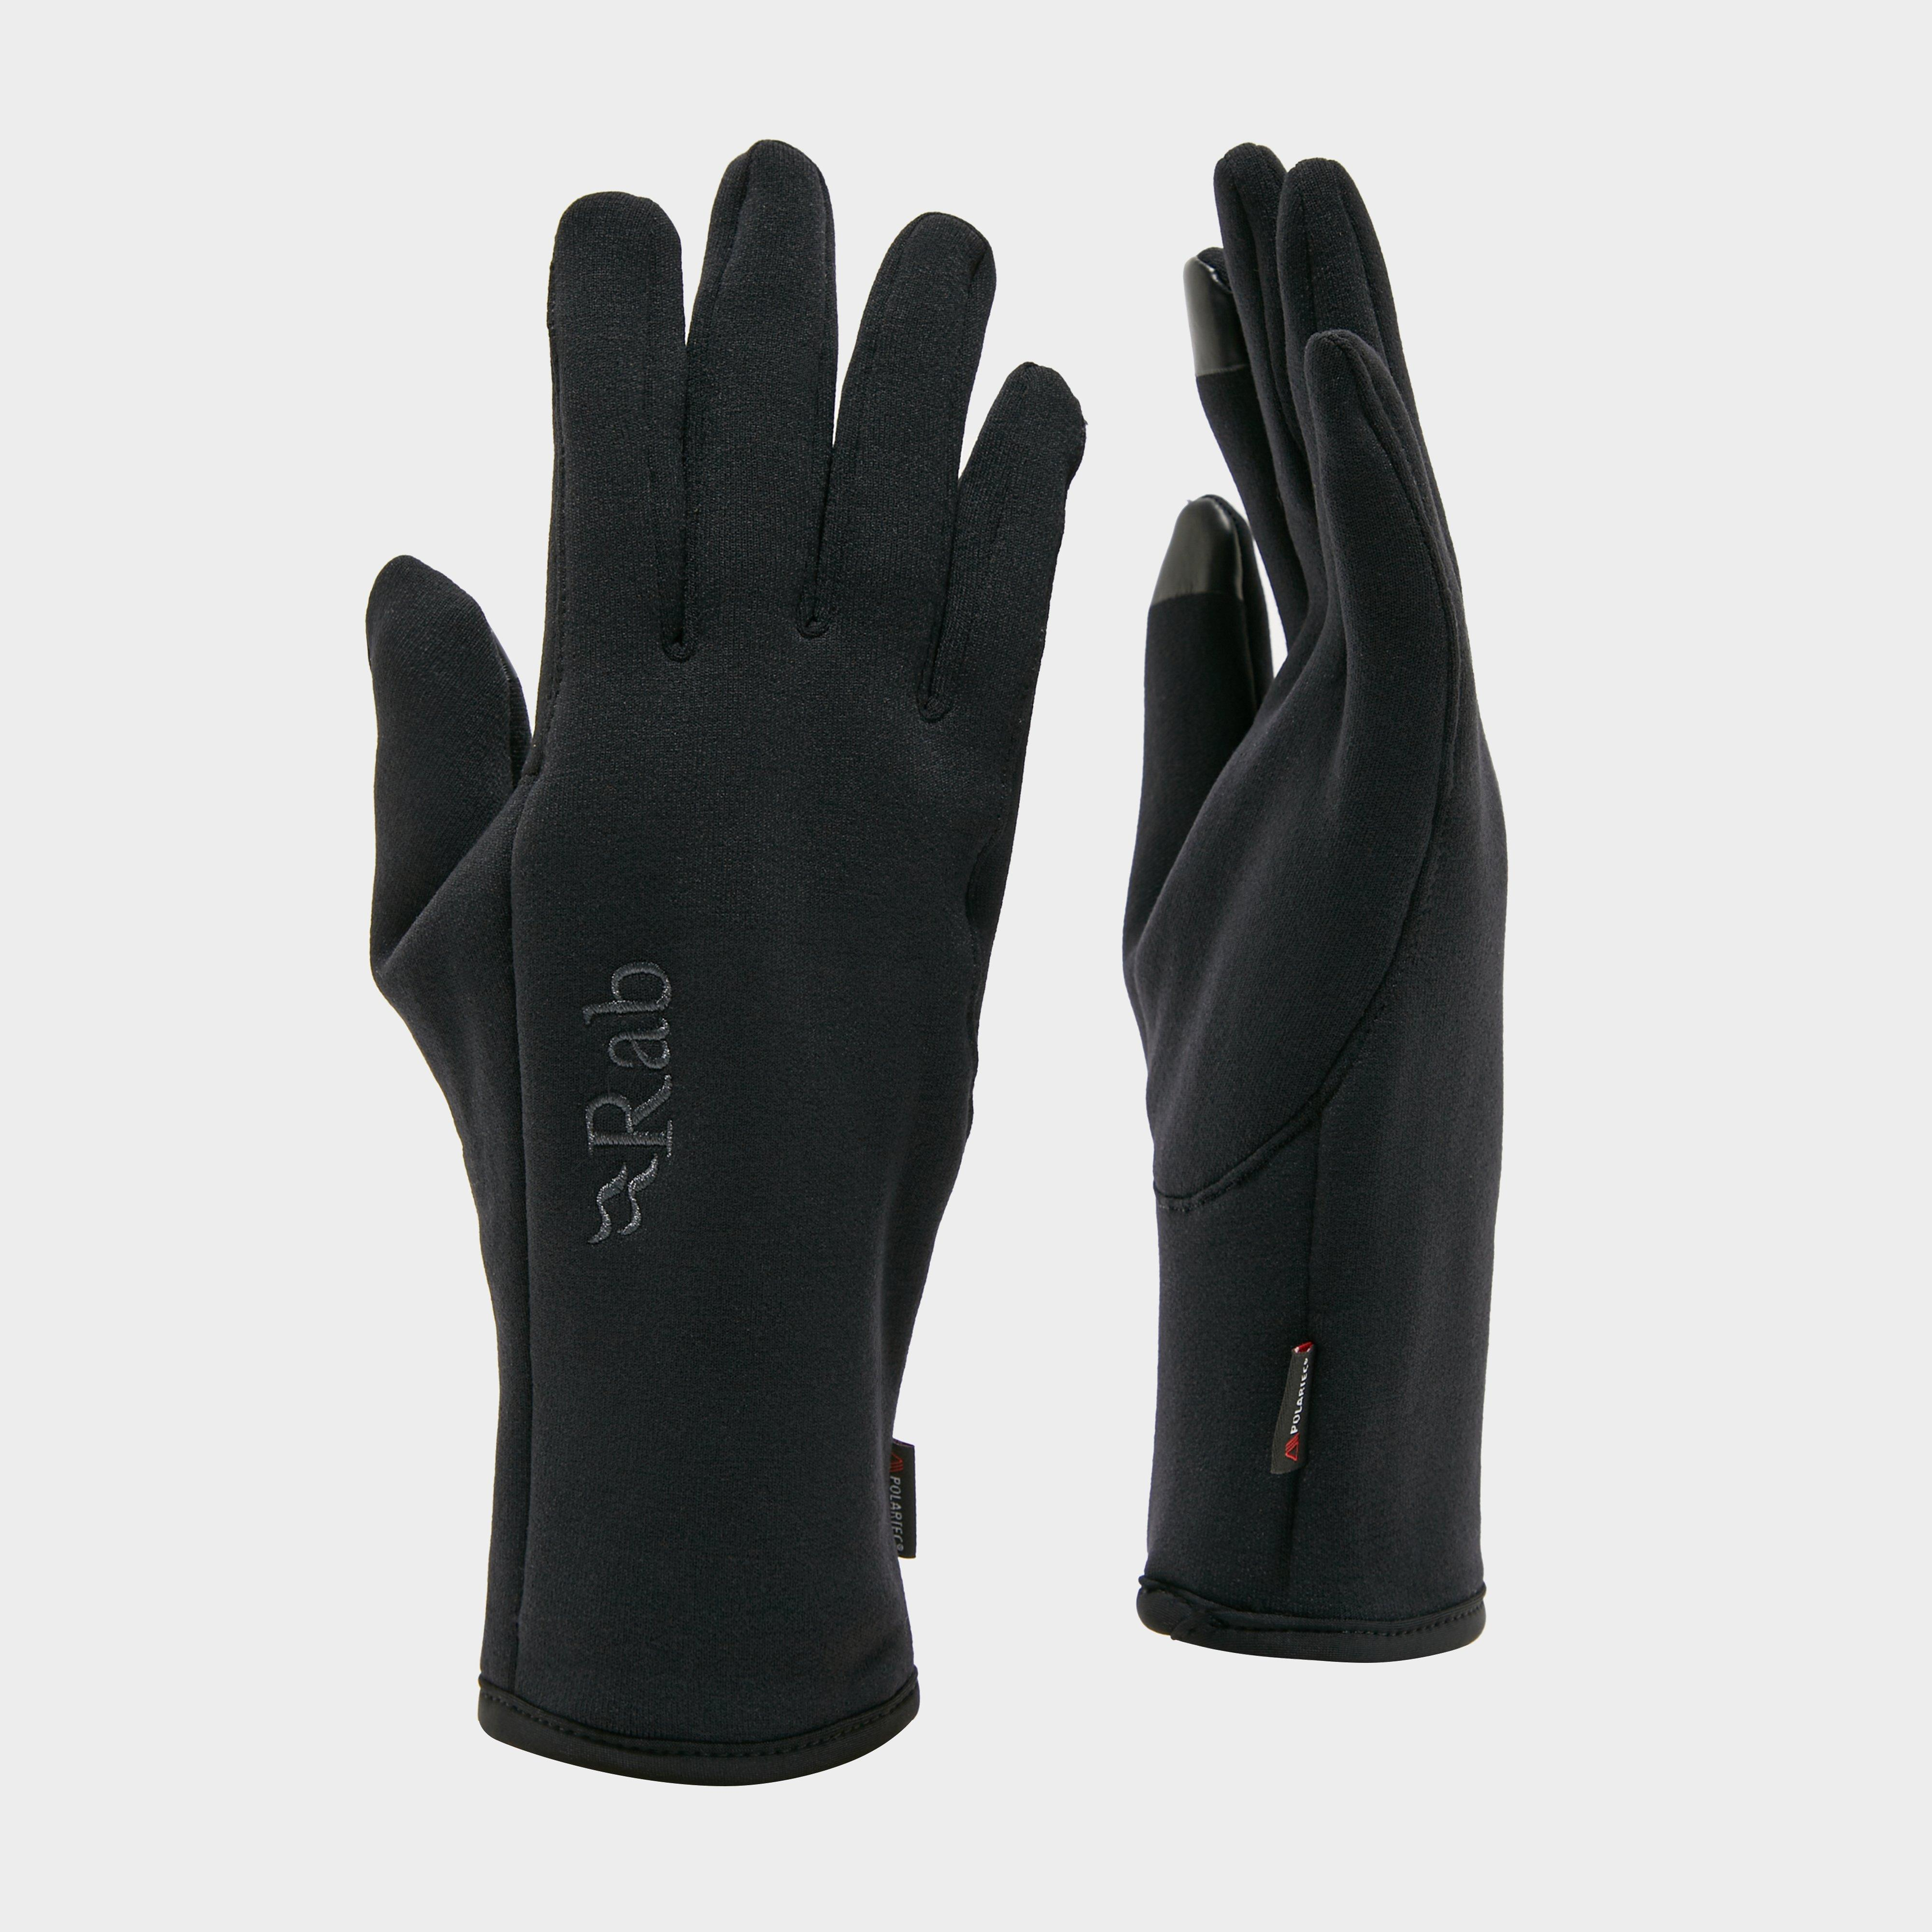 Rab Power Stretch Contact Glove, Black